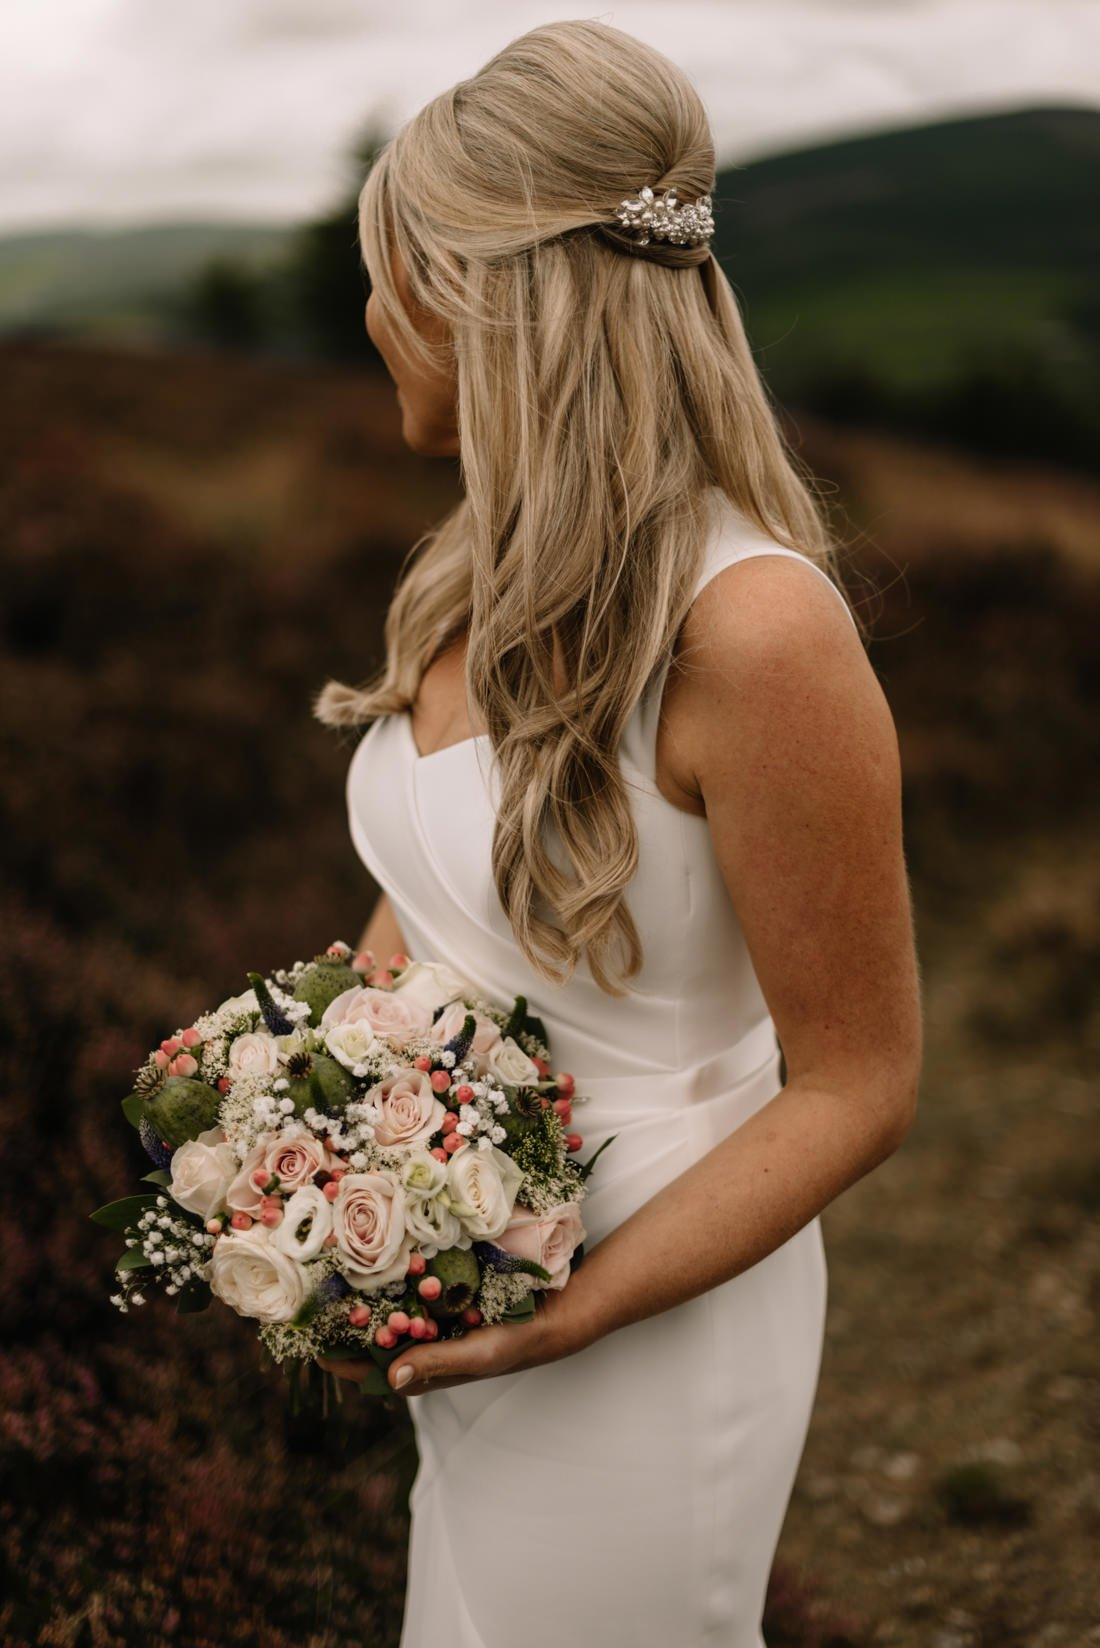 120 wedding at the brooklodge macreddin village wedding photographer wicklow